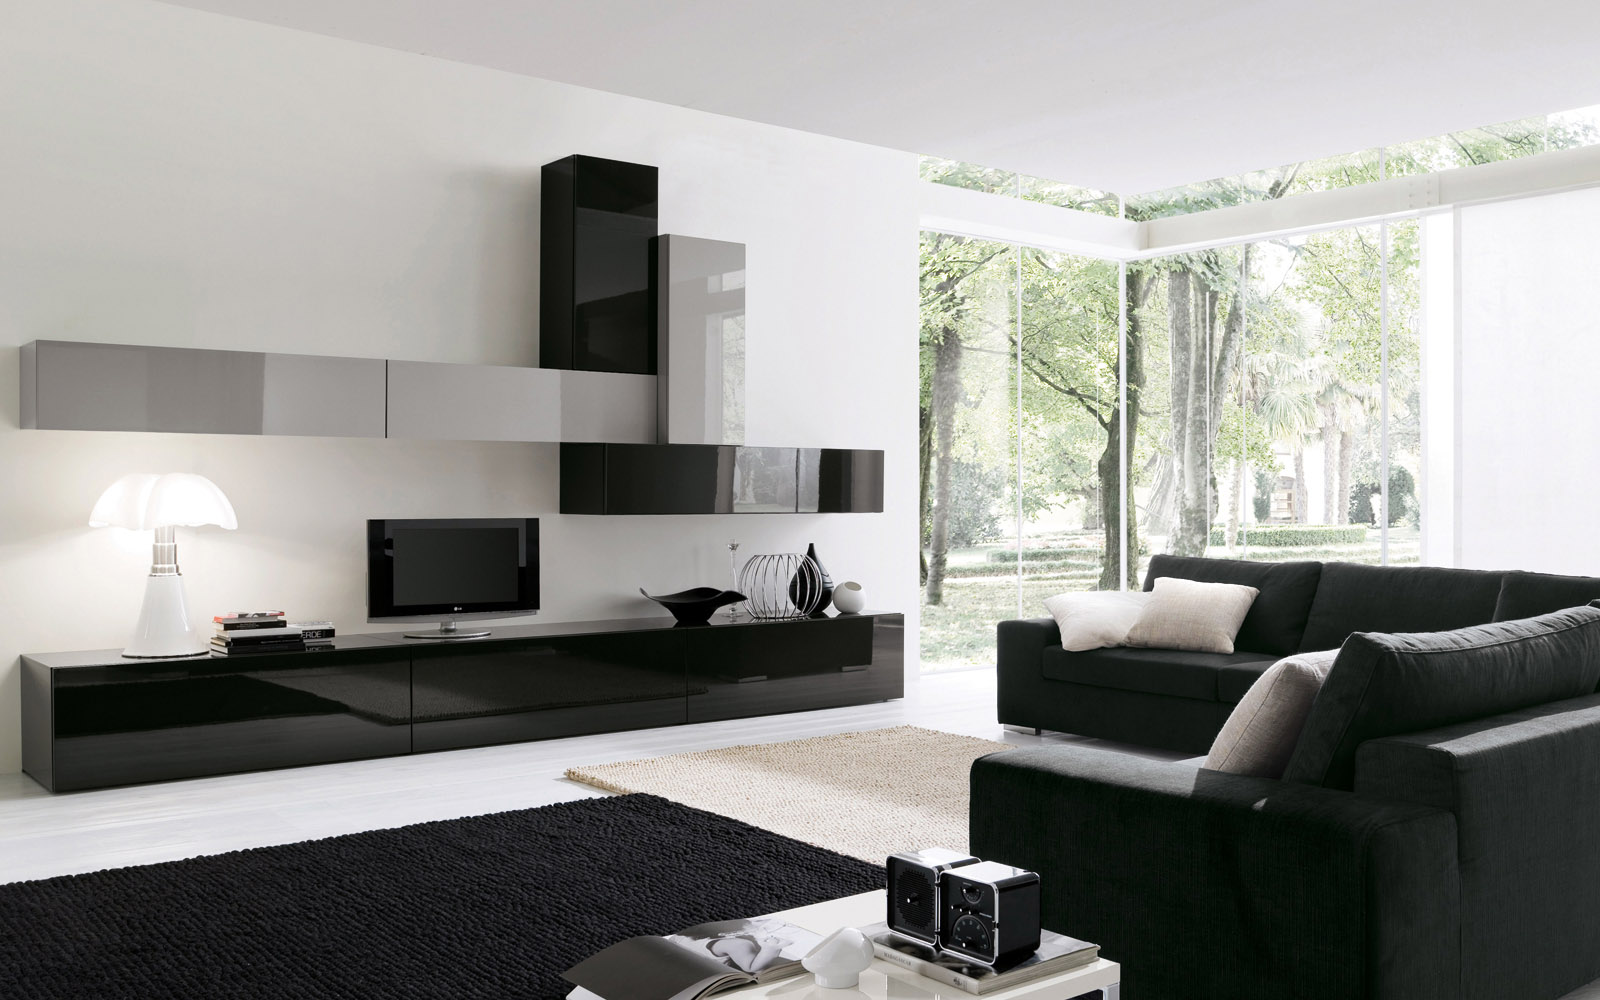 biblioth que murale b124 meubles steinmetz. Black Bedroom Furniture Sets. Home Design Ideas